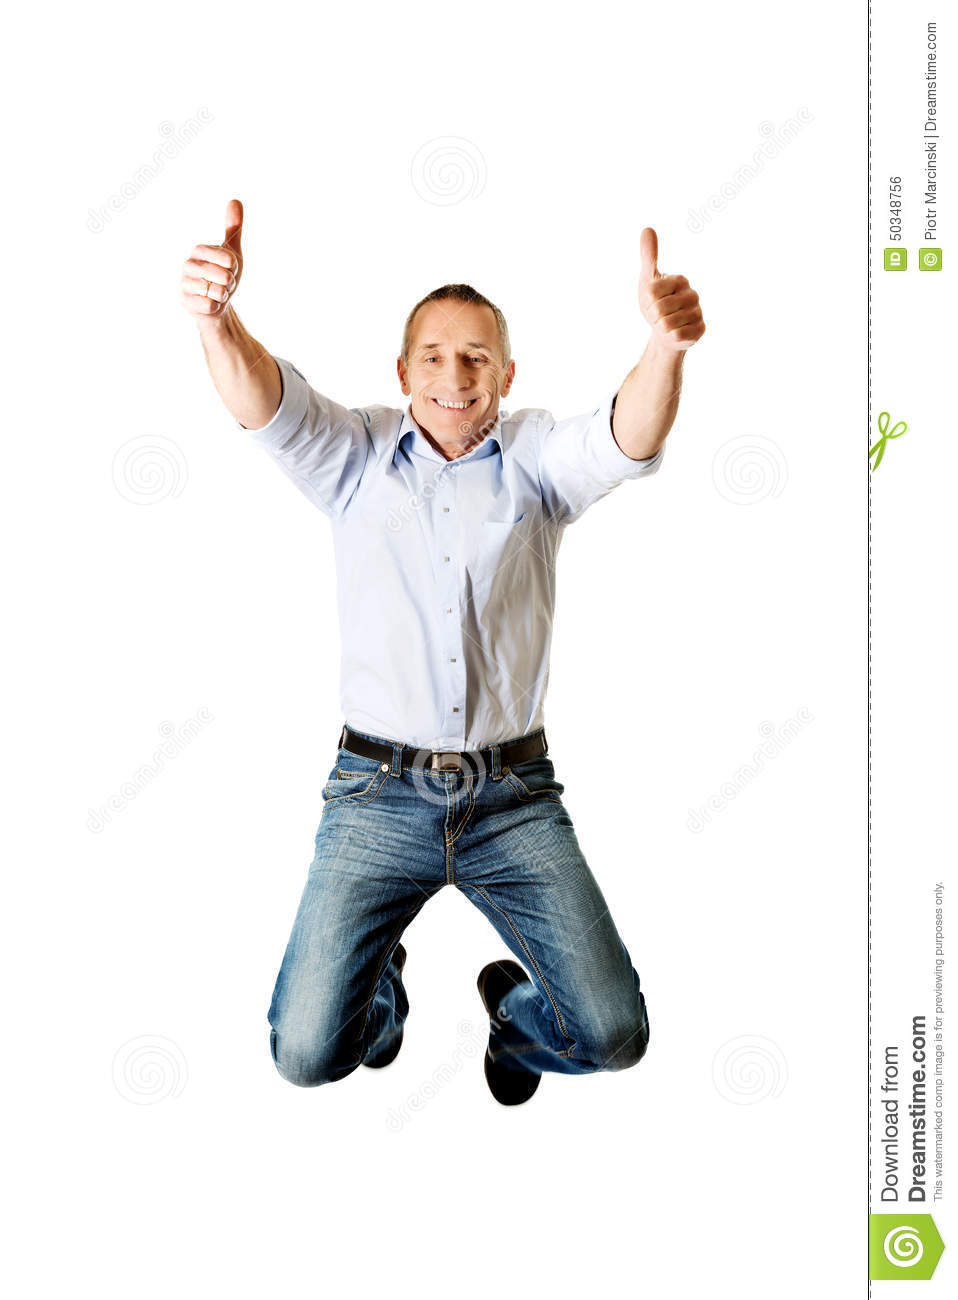 mature man jumping with thumbs up stock photo - image of caucasian